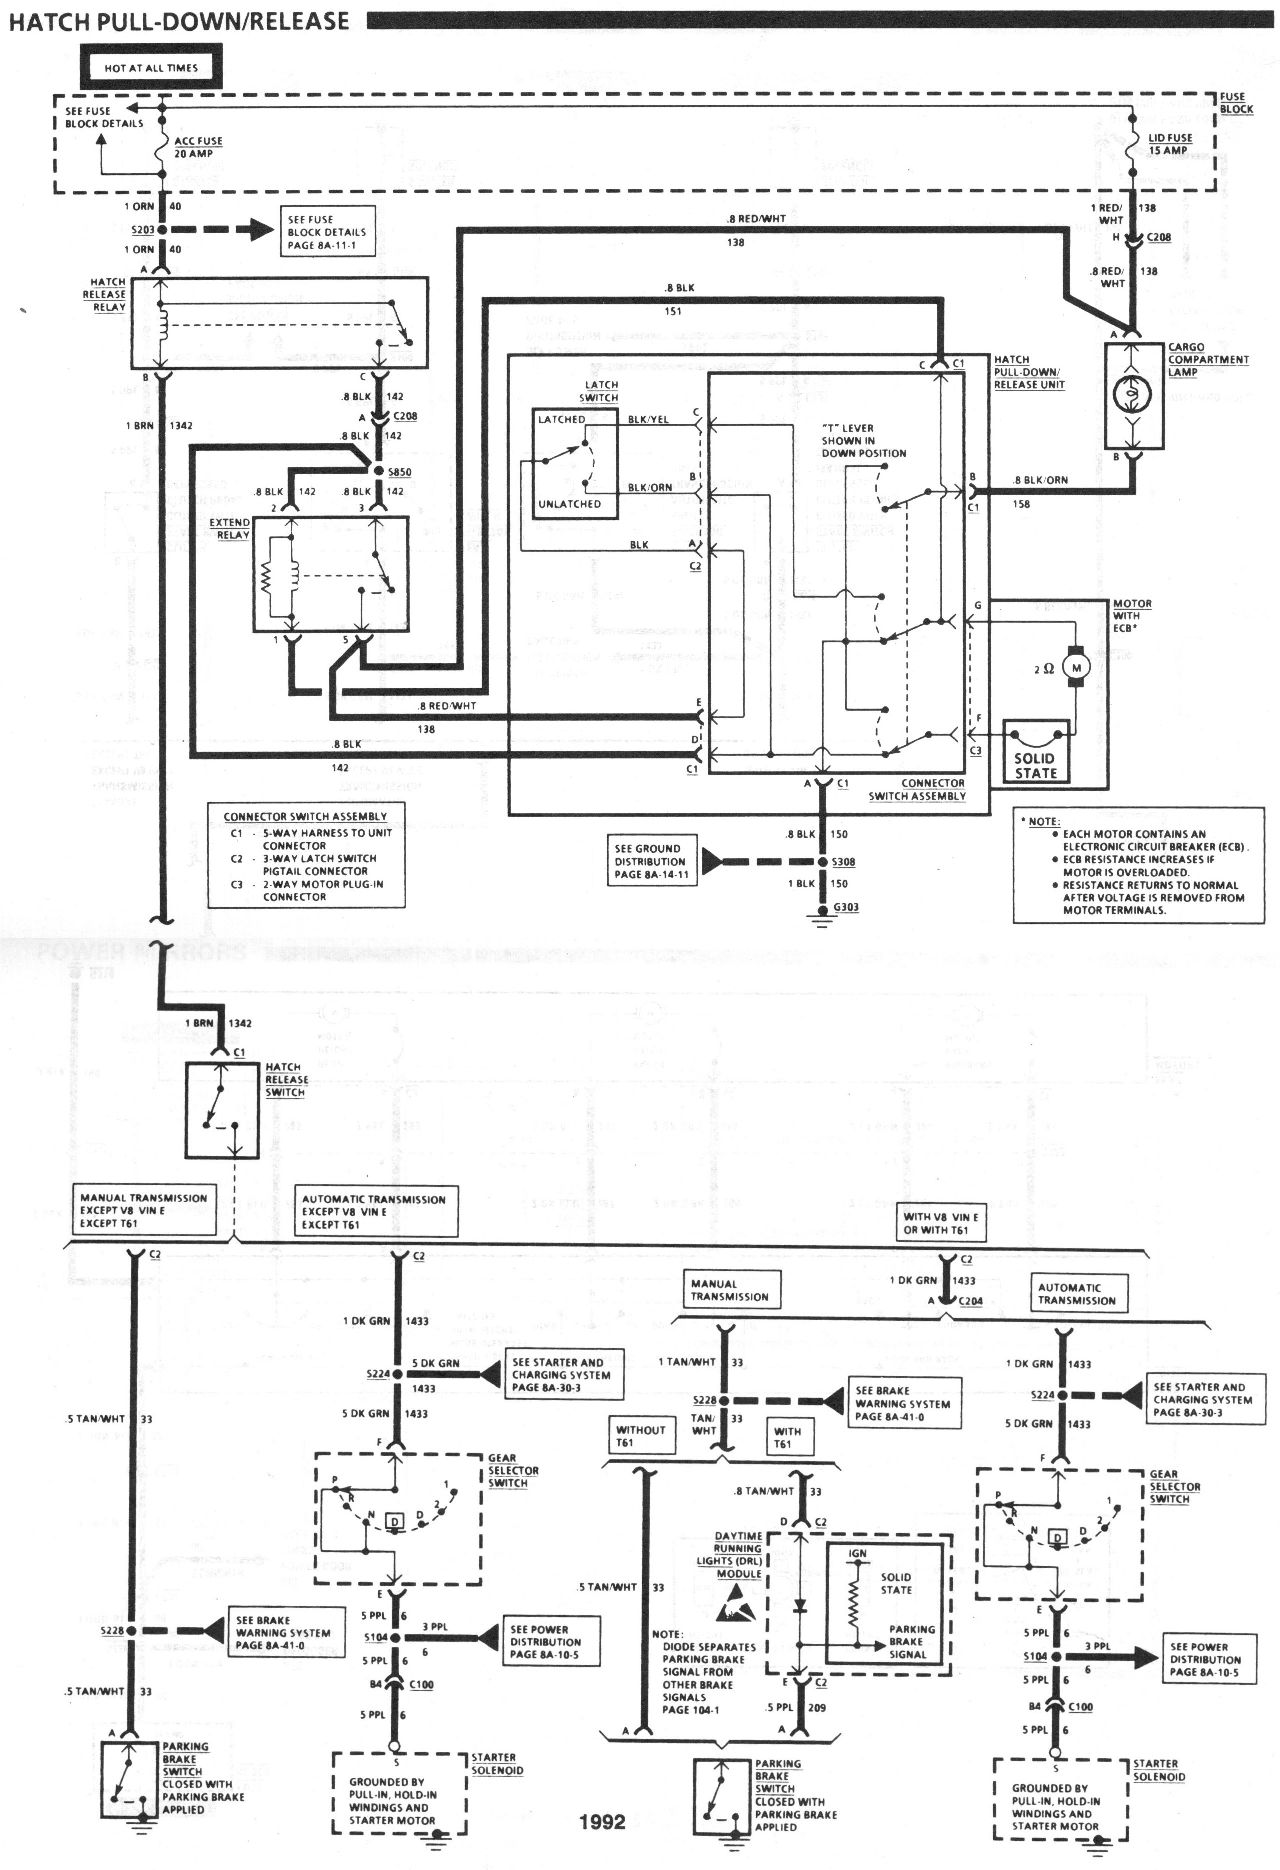 1989 Chevrolet G20 Fuse Box Diagram Wiring Schematic